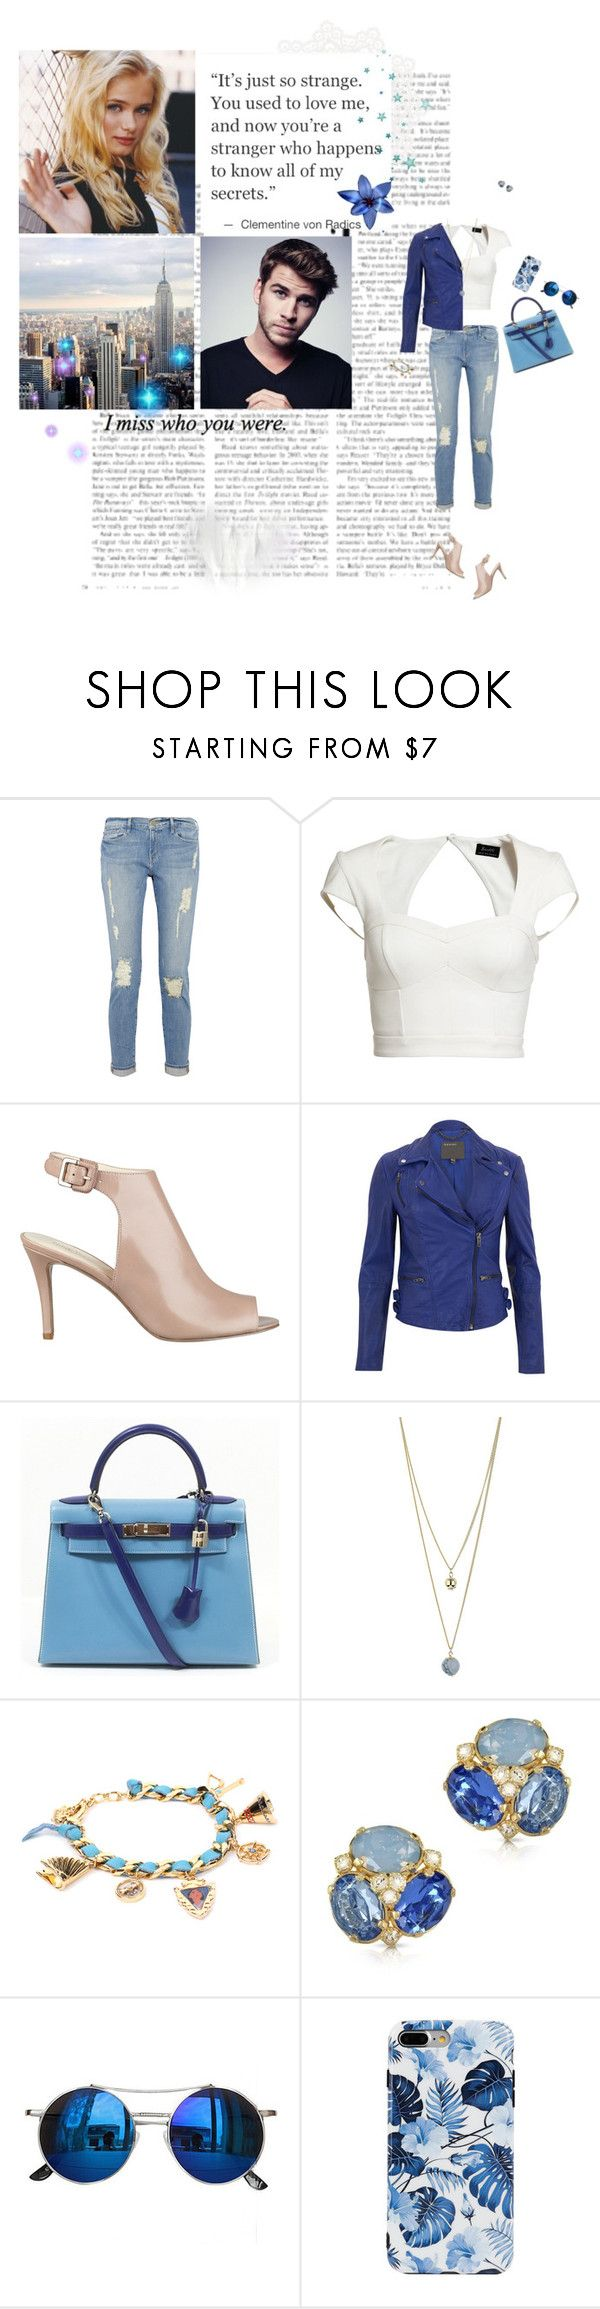 """Everything was blue"" by amber-daylight ❤ liked on Polyvore featuring Frame, Bardot, Nine West, Love Quotes Scarves, MuuBaa, Hermès, Dorothy Perkins, Disney Couture, Forzieri and Chicnova Fashion"